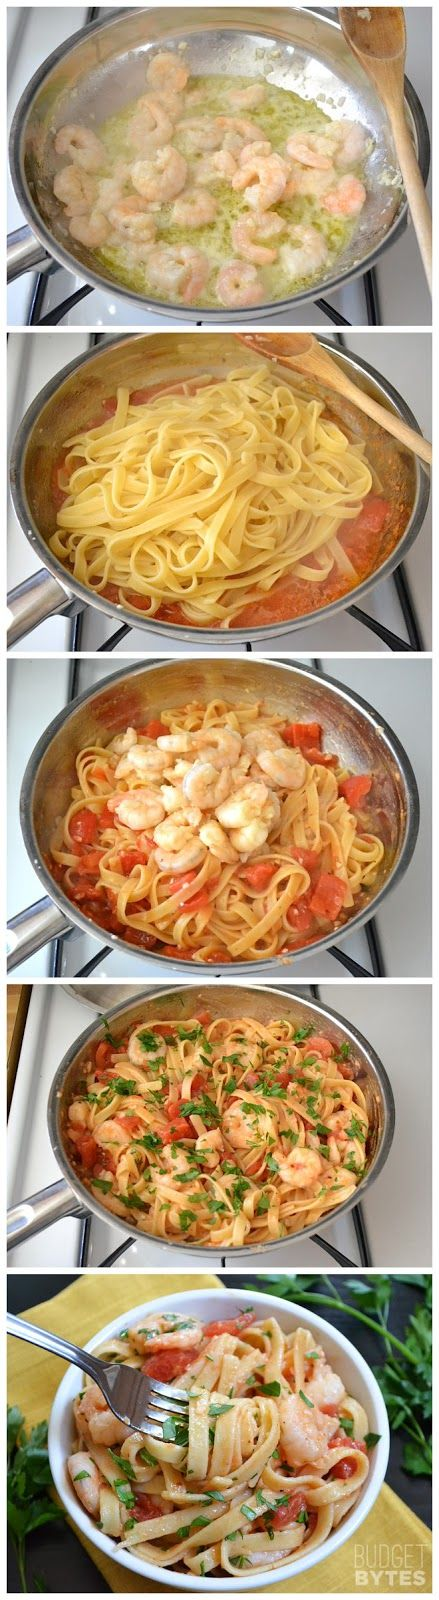 : Spicy Shrimp & Tomato Pasta